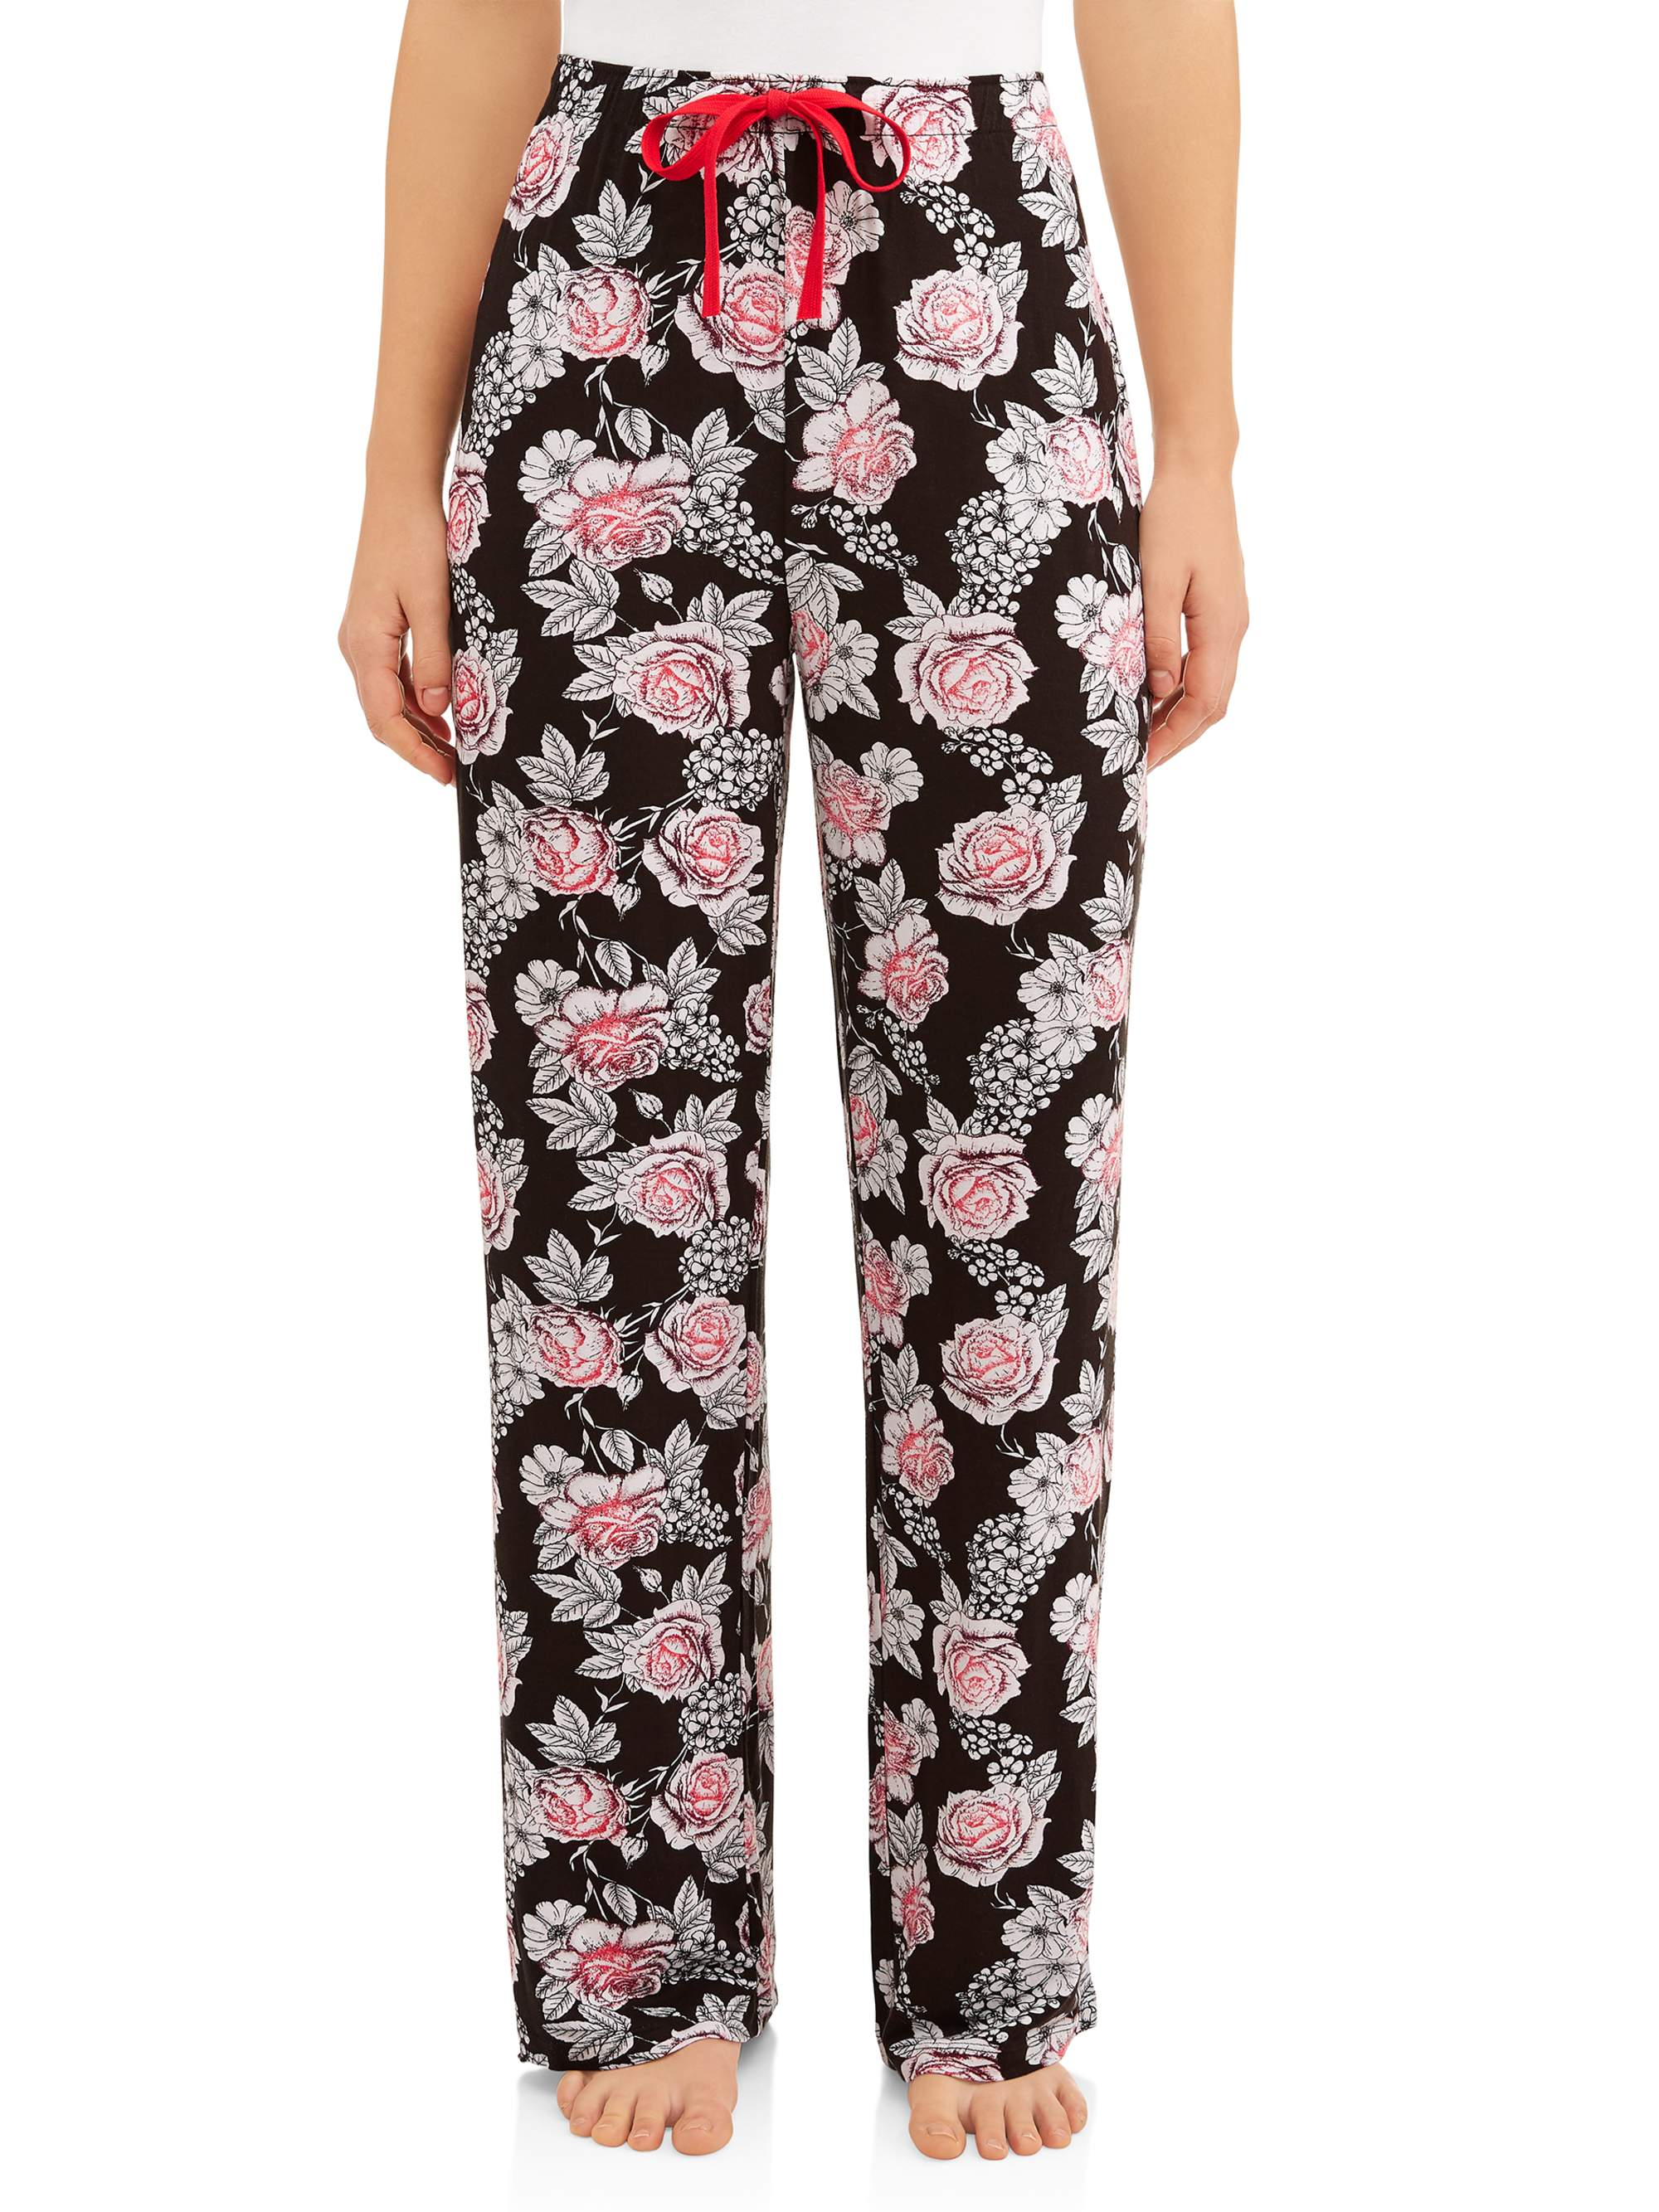 Secret Treasures Women's and Women's Plus Pant